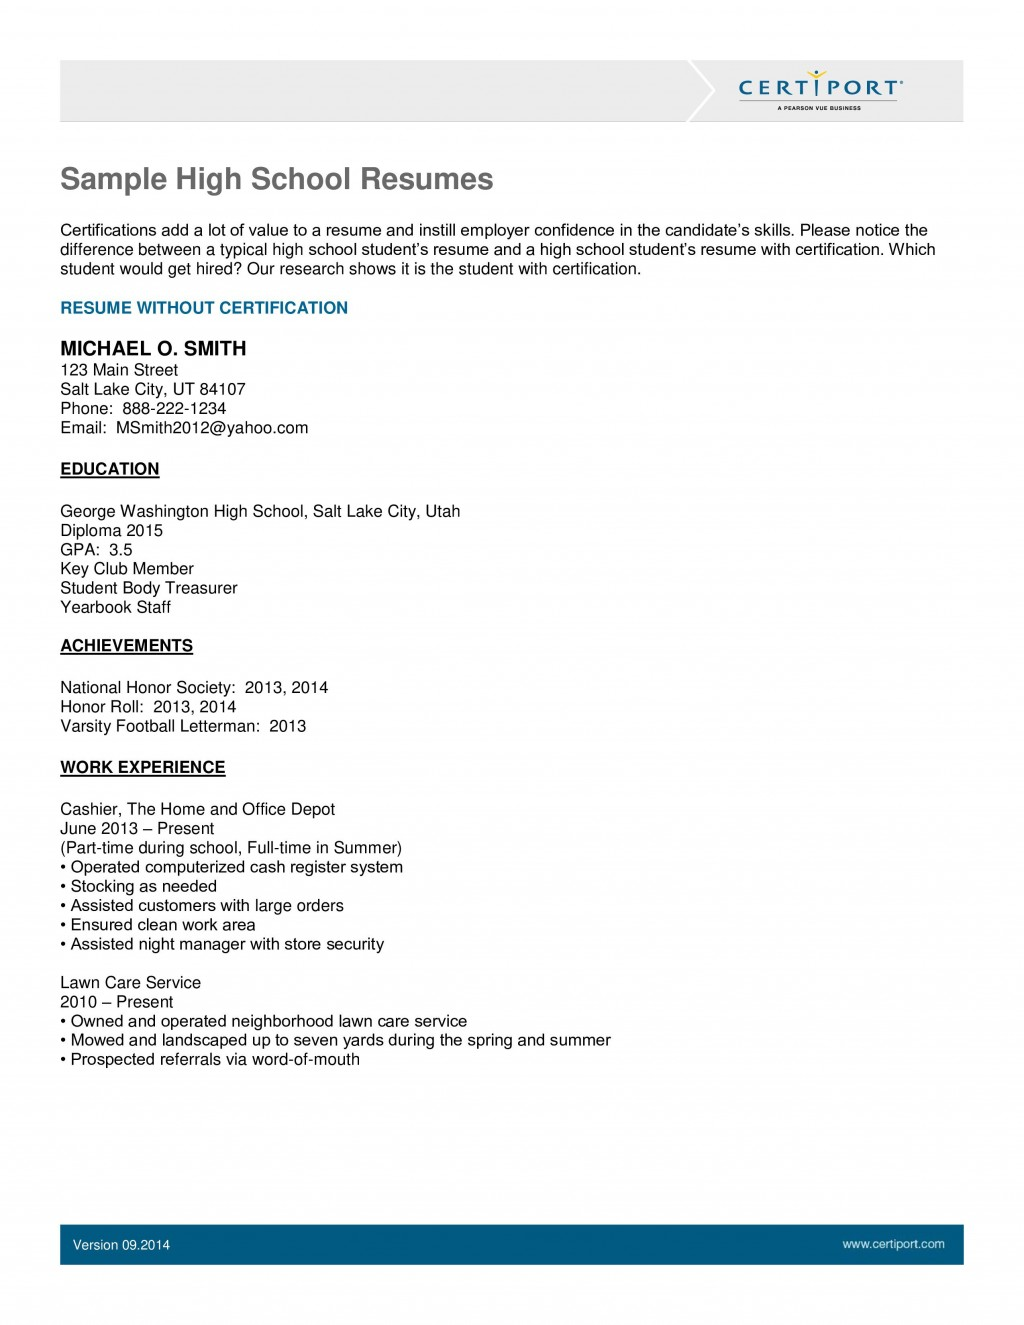 003 Breathtaking Resume Template High School Student Resolution  Students Easy For Curriculum Vitae Format Pdf Free DownloadableLarge